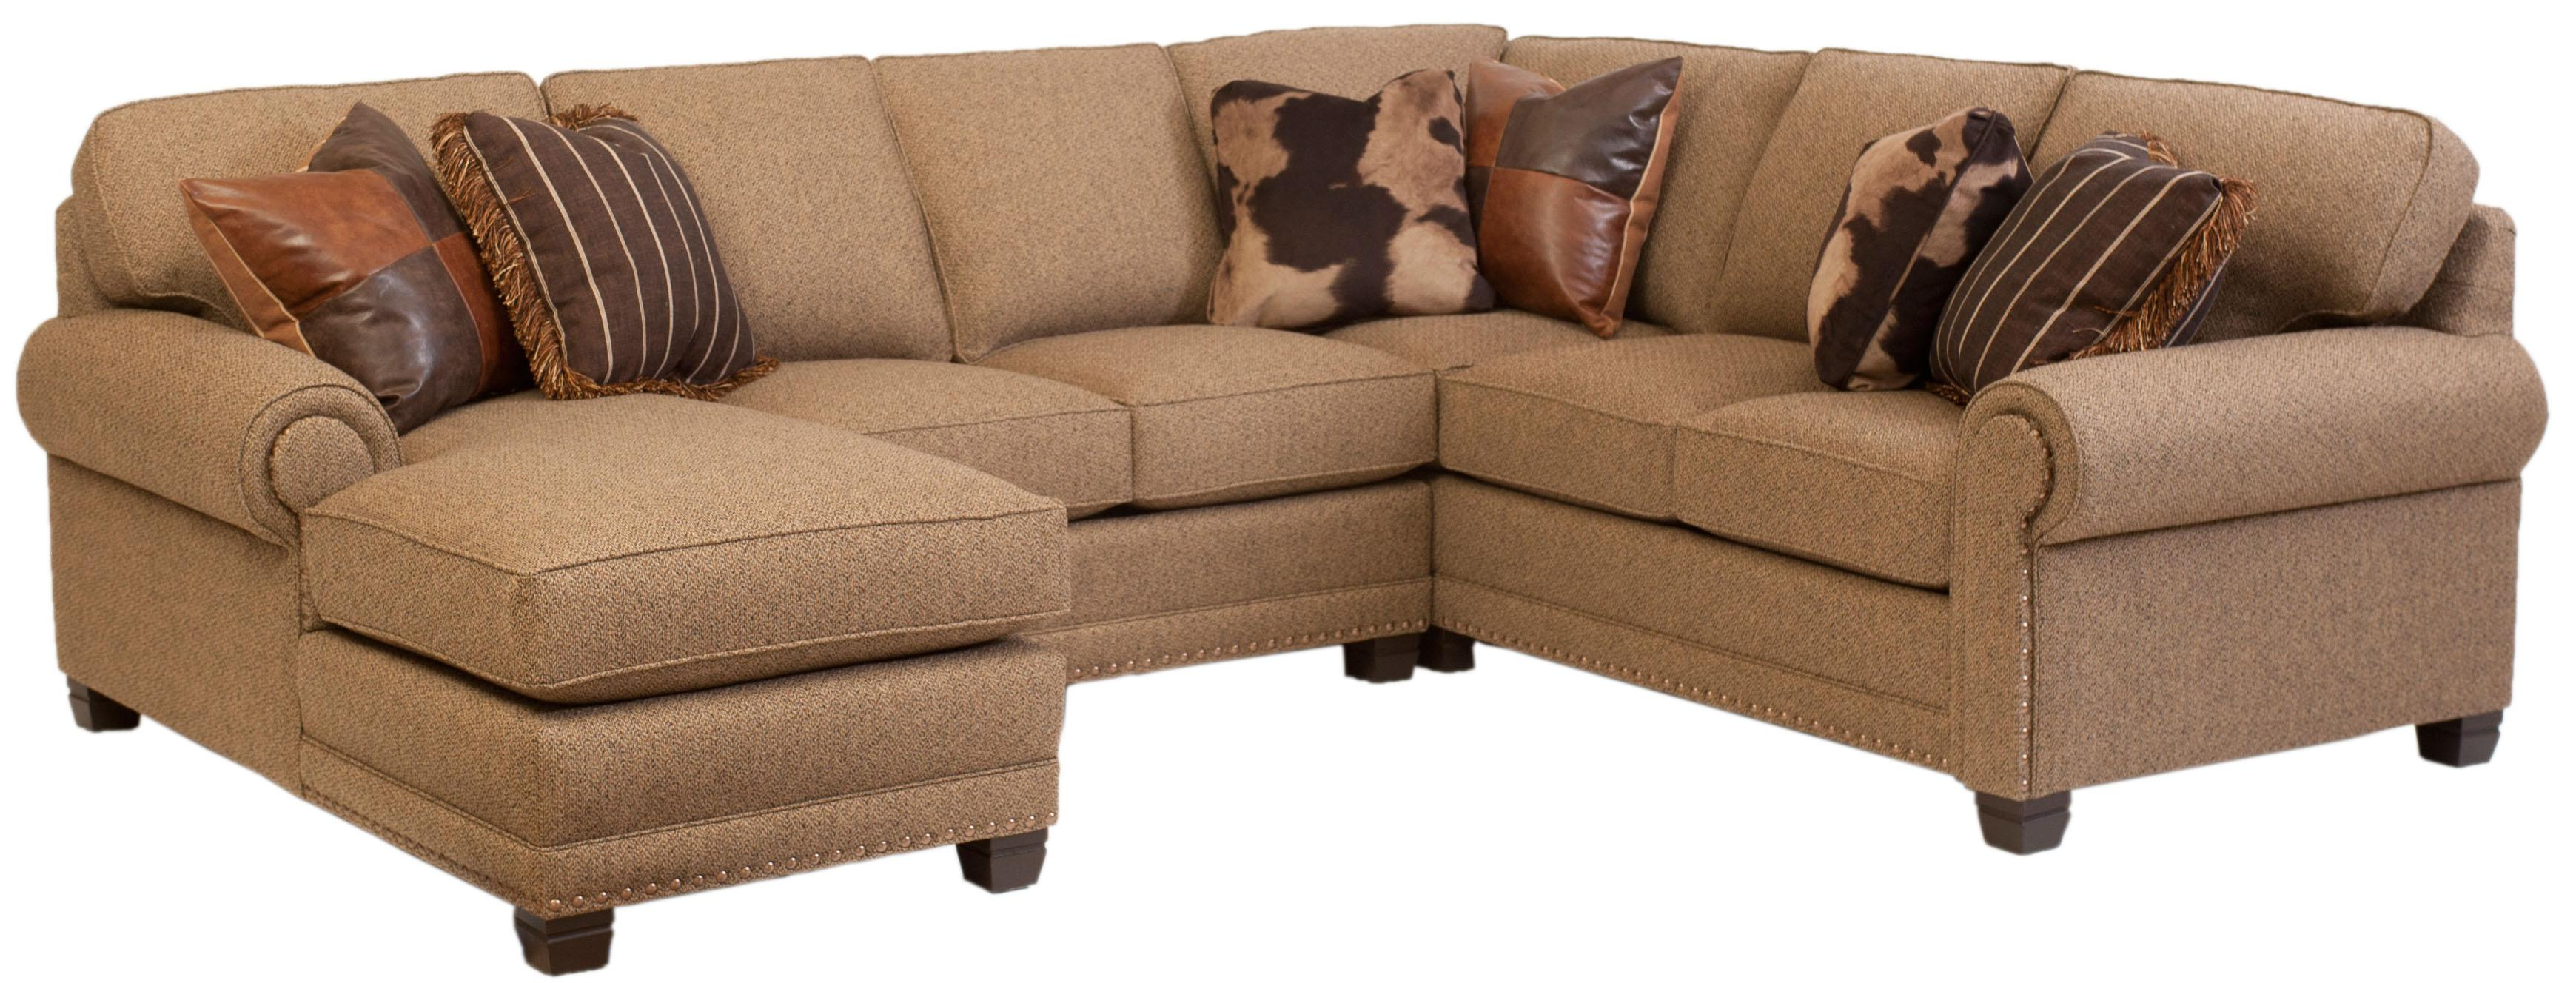 sofa italia corner ravenna left loveseat sectional right sectionals benetti silver facing s product gallery chaise